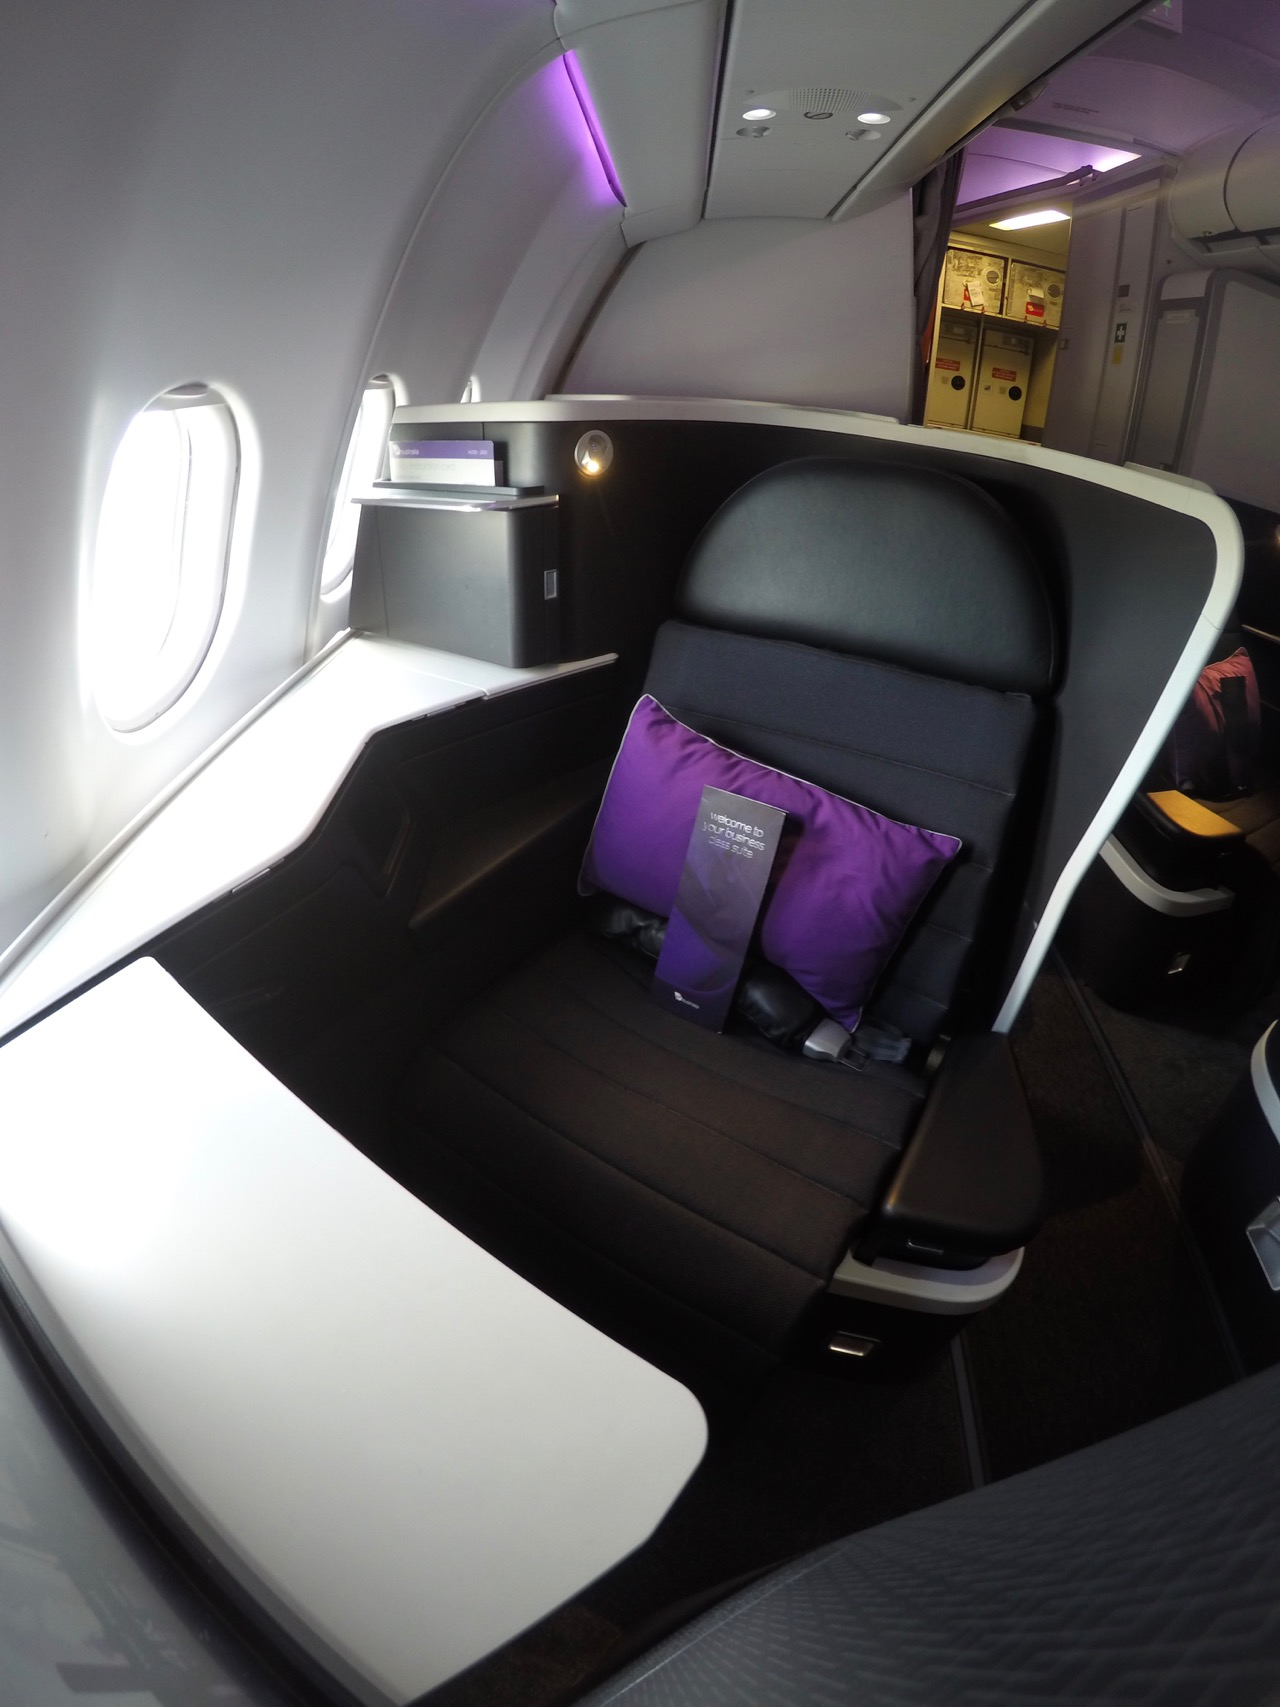 Virgin Australia A330 Business Class Overview Point Hacks Nz